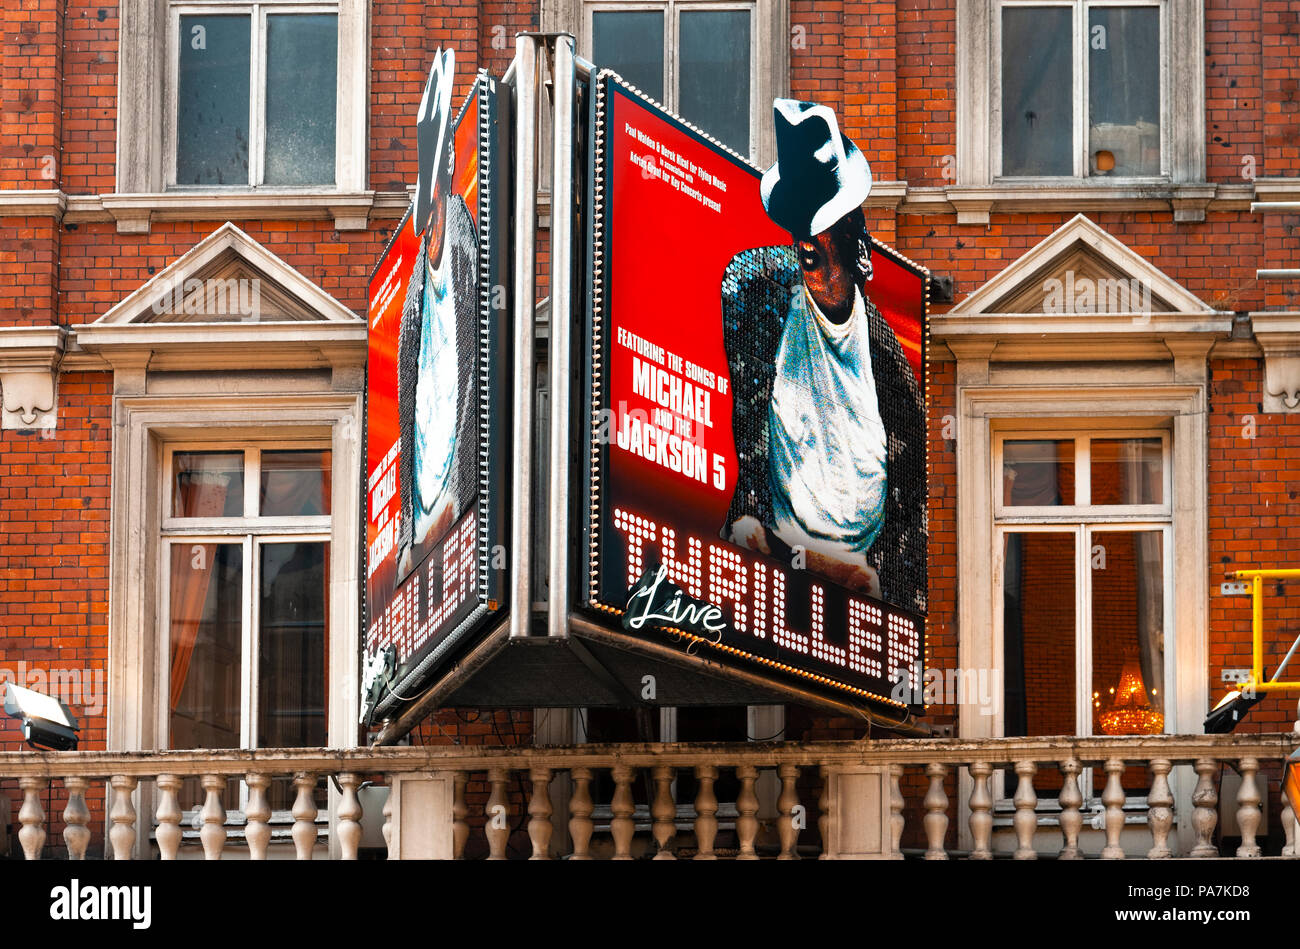 The Lyric Theatre in Shaftesbury avenue where 'Thriller Live' concert is performed in London's west end. - Stock Image